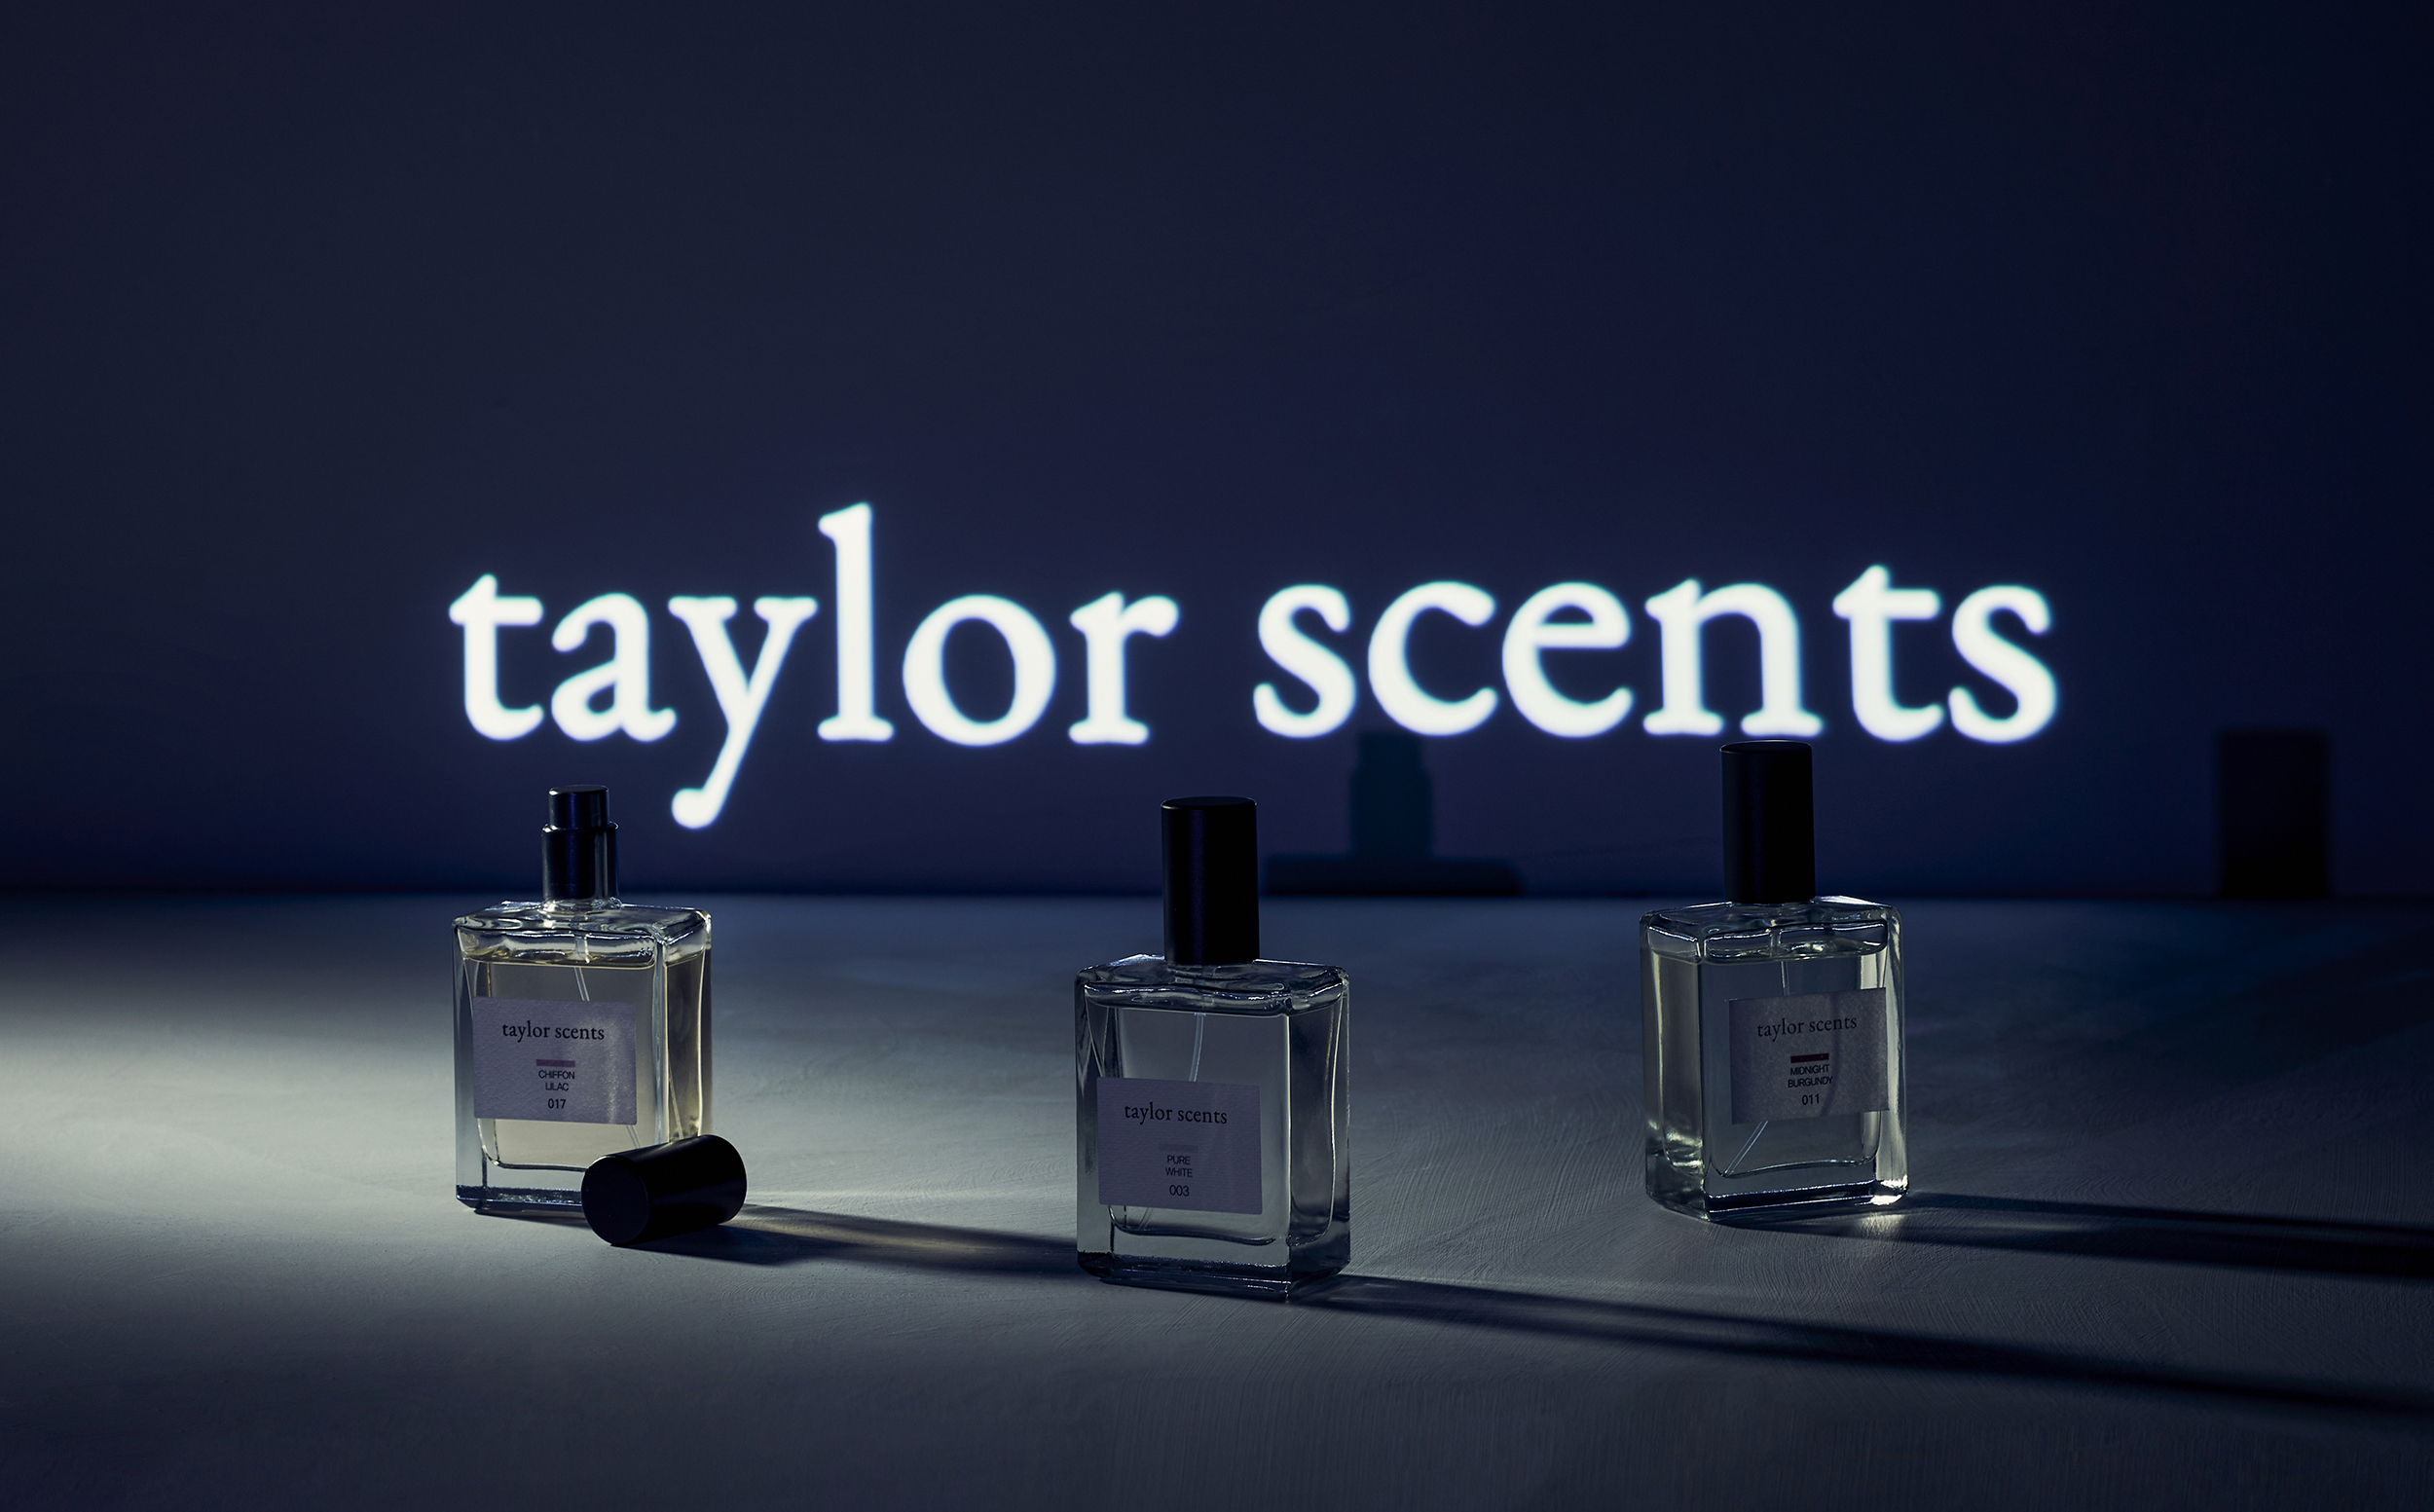 taylor scents